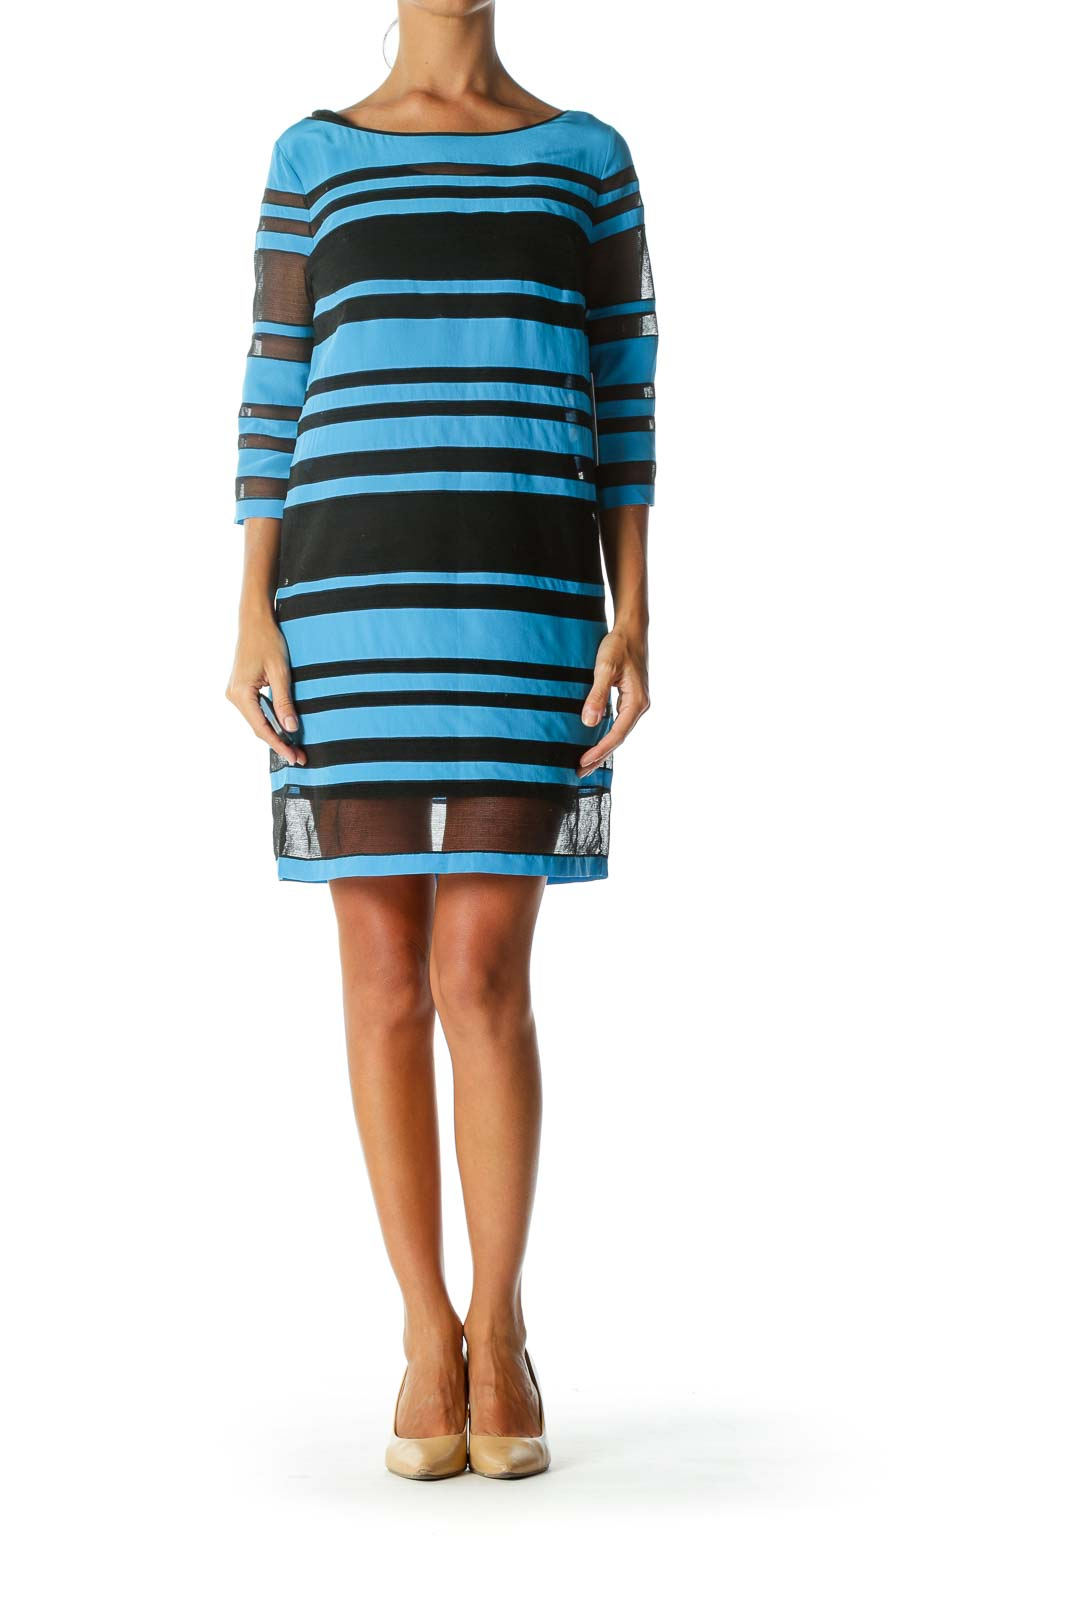 Blue & Black Mesh-Detail Designer Short-Sleeve Dress